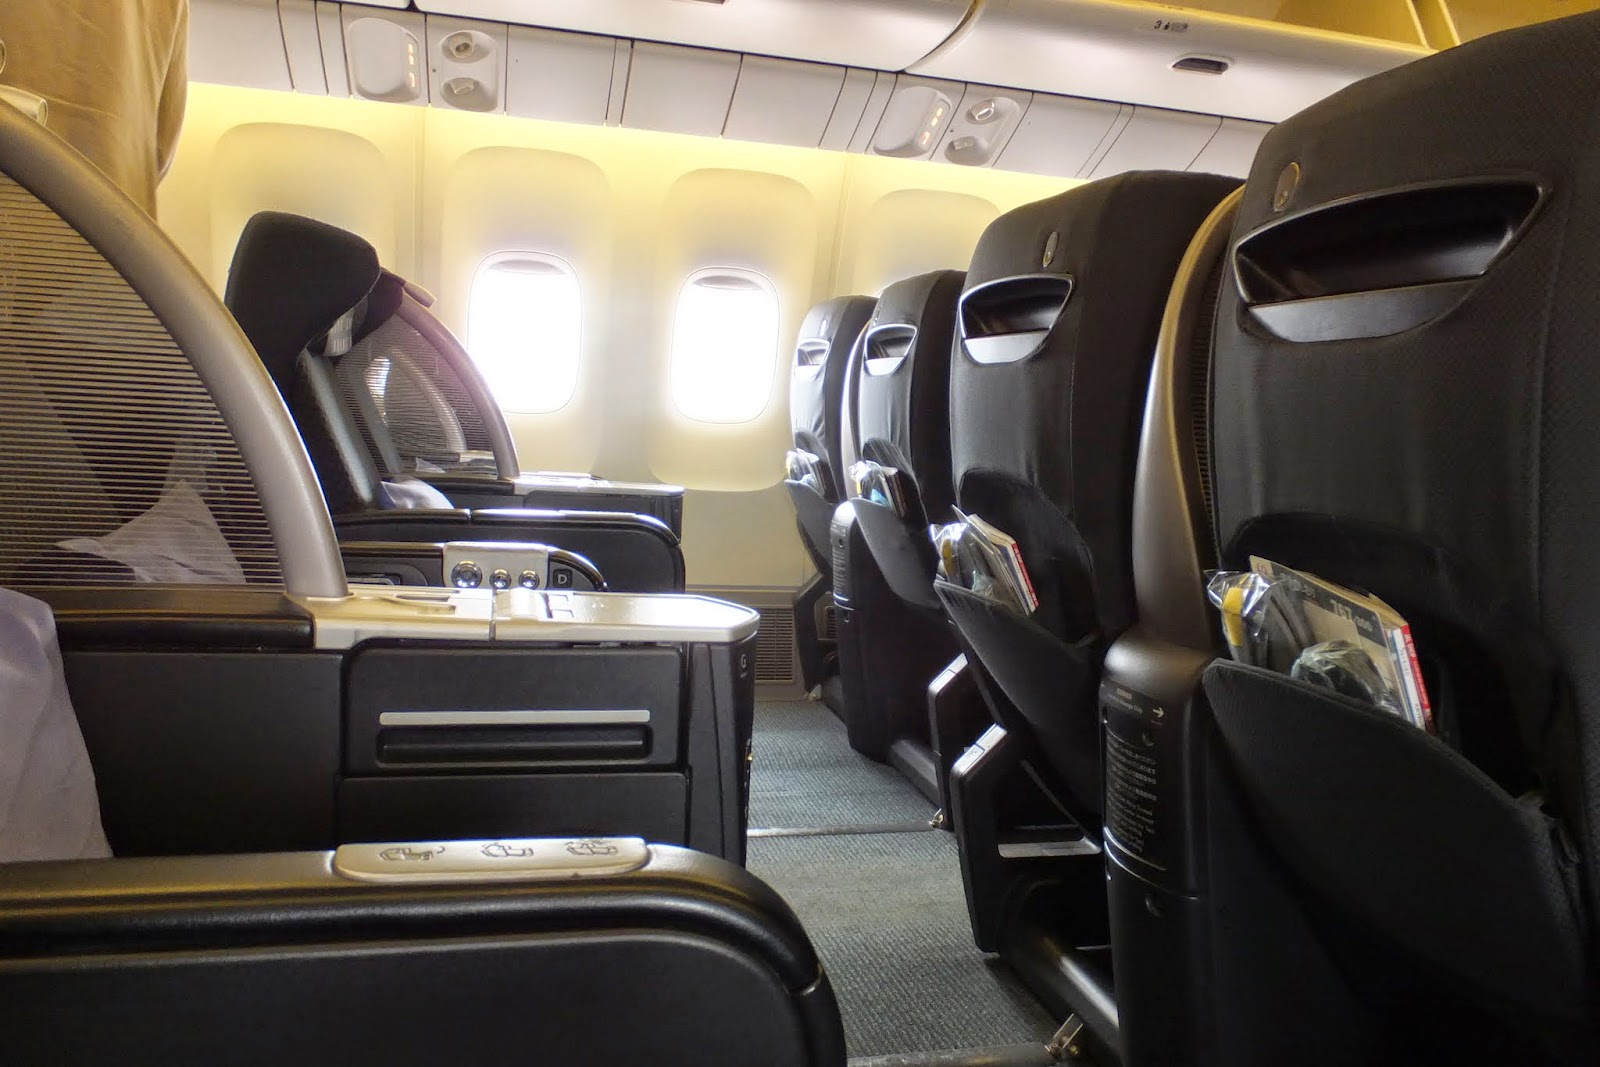 jal-skyrecliner-seat-businessclass